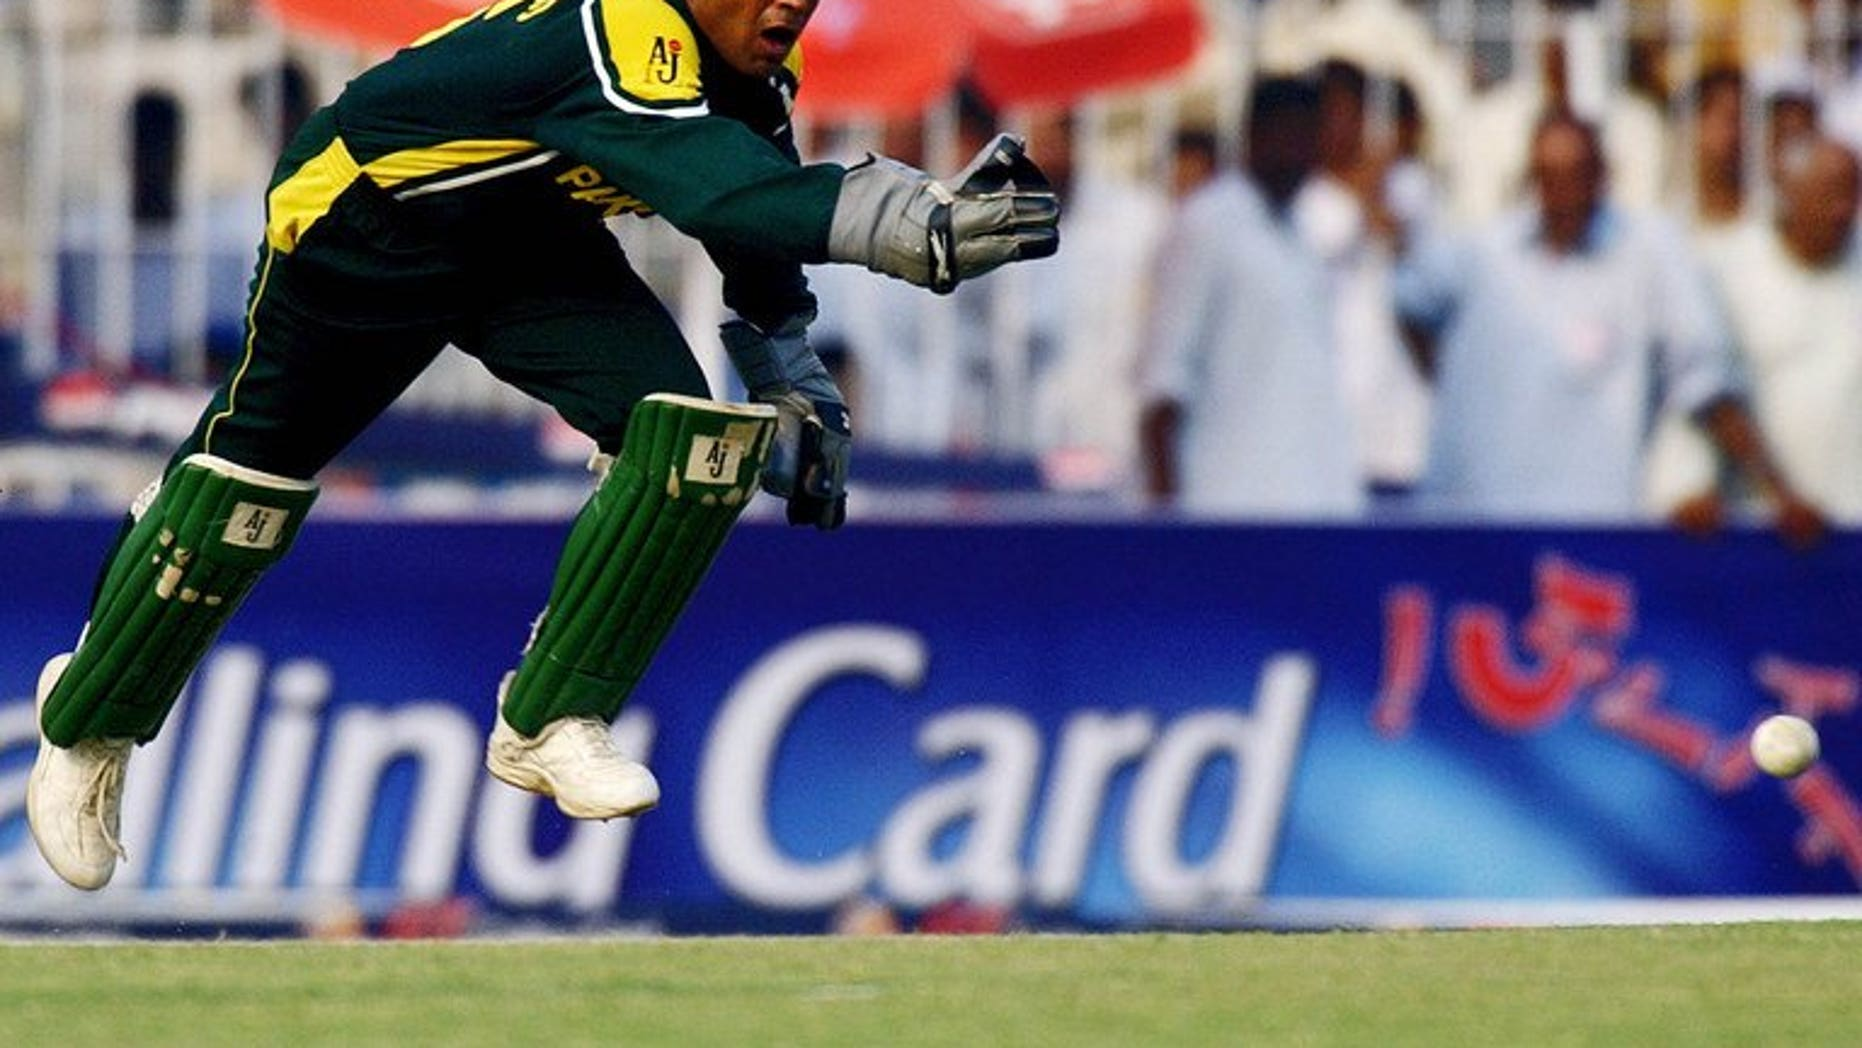 Pakistani wicketkeeper Rashid Latif leaps in an attempt to field a ball in Faisalabad, on October 7, 2003. The Pakistan Cricket Board said Friday that former captain Latif must apologise or provide proof supporting his claims that an alleged bookie was their guest in 2005.